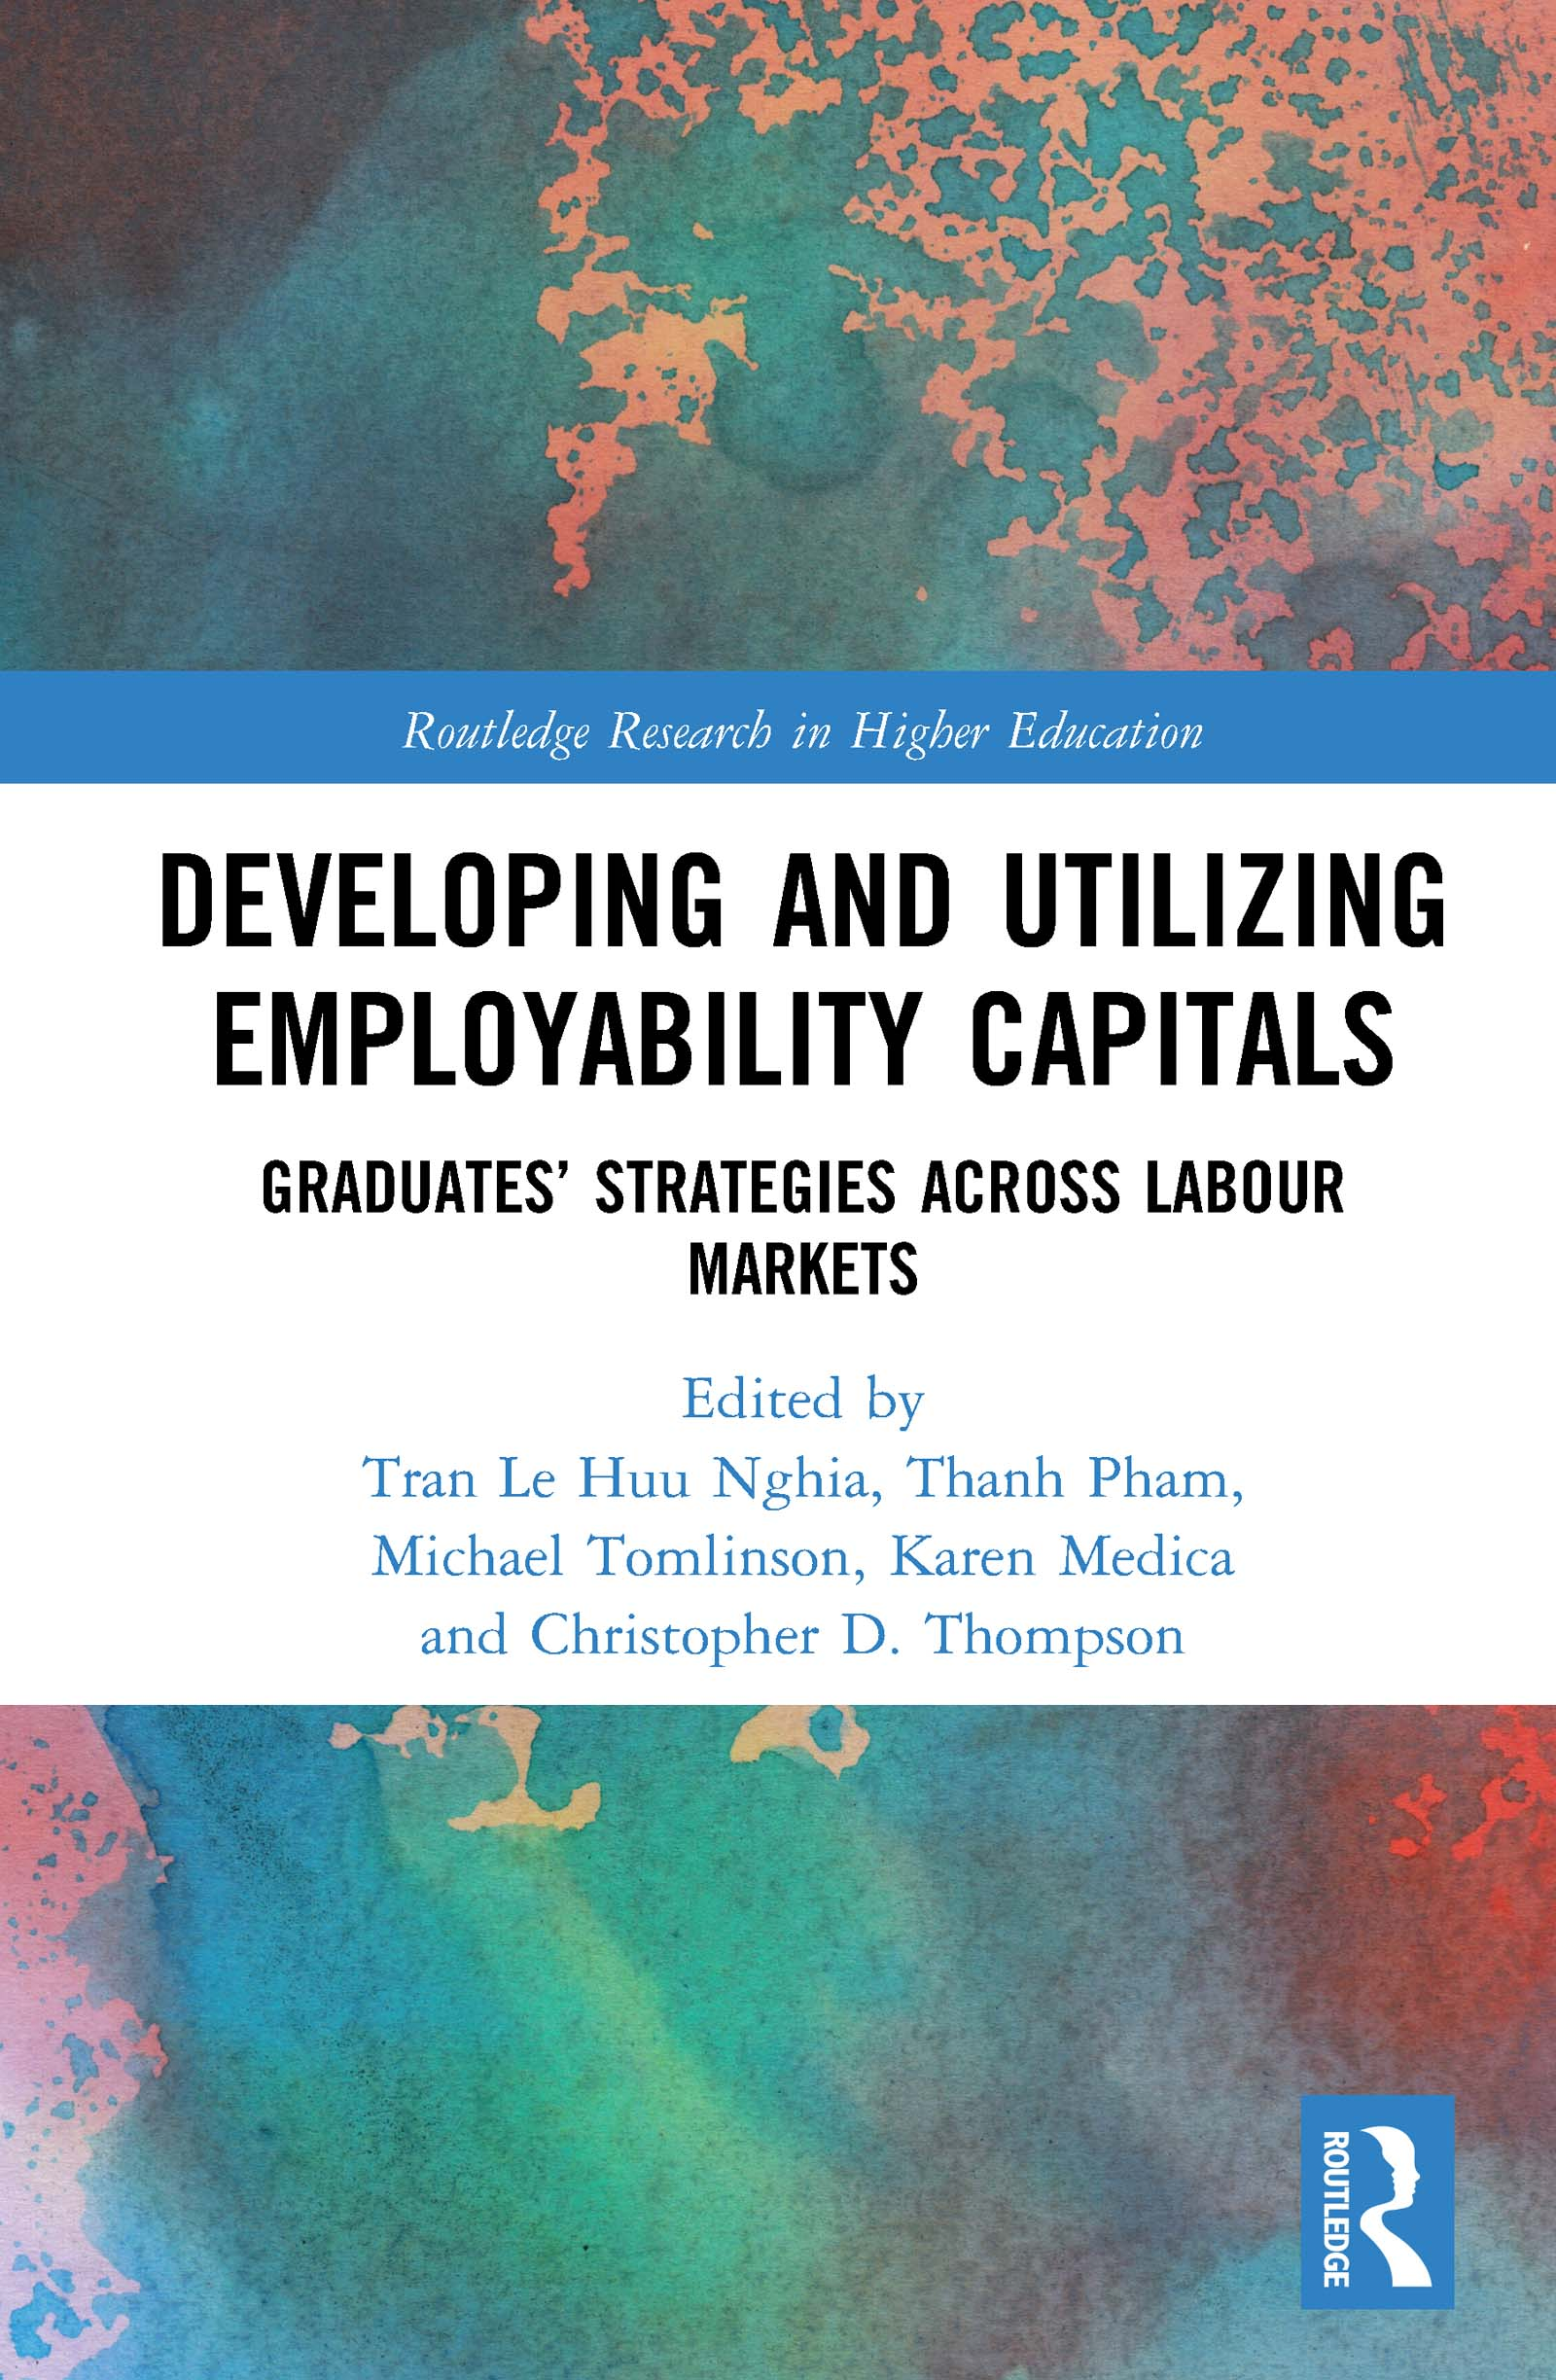 Developing and Utilizing Employability Capitals: Graduates' Strategies across Labour Markets, 1st Edition (Hardback) book cover